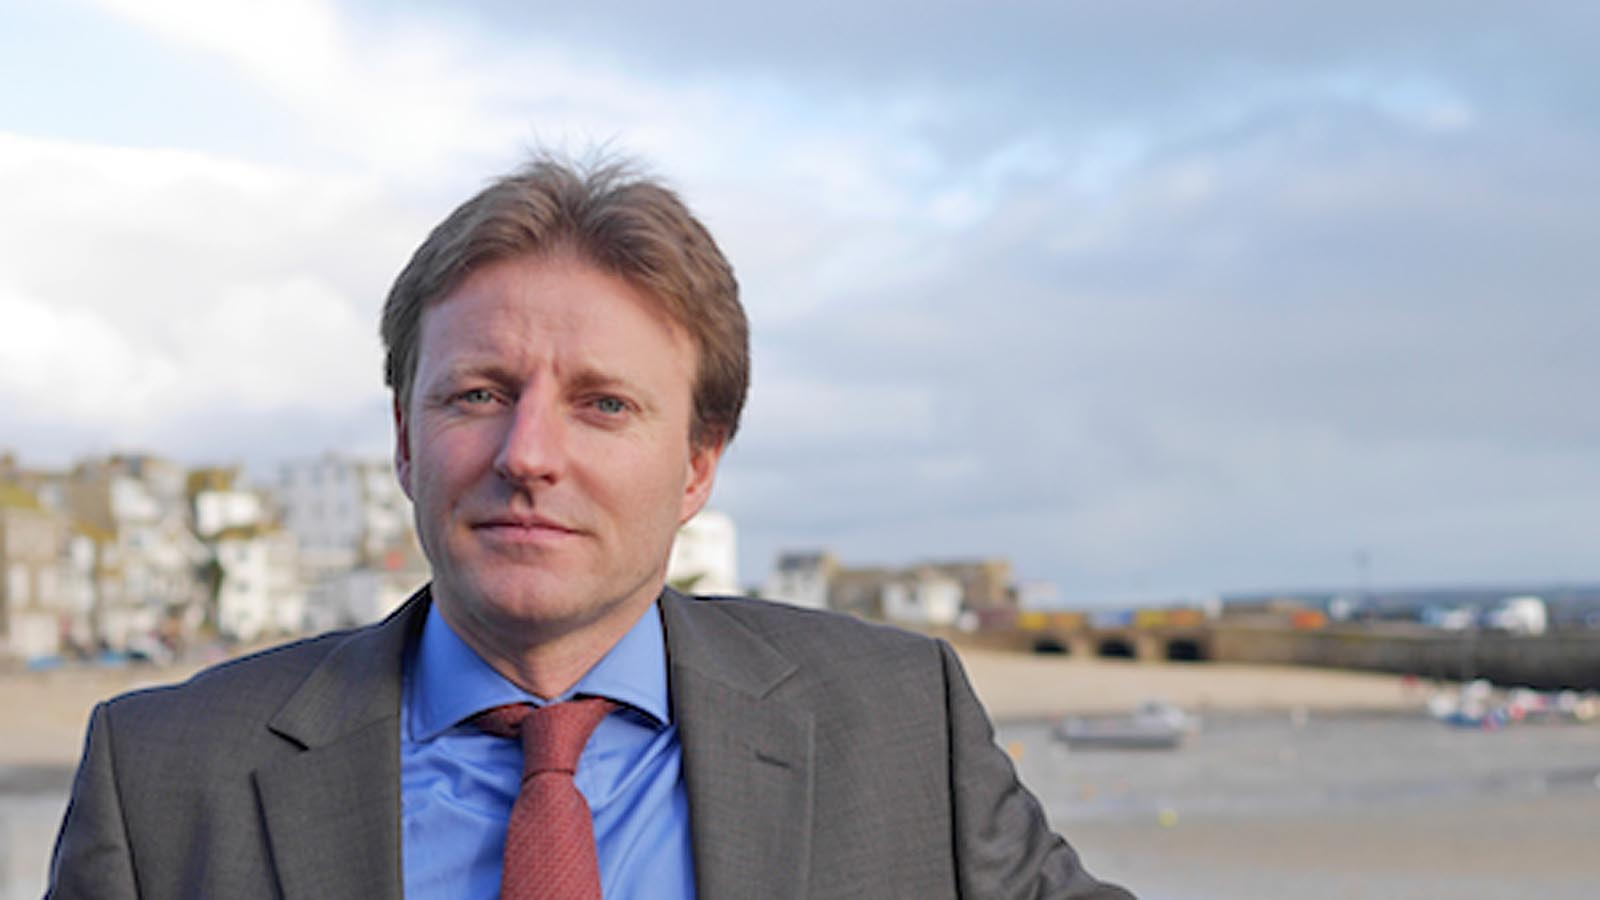 Prospective Conservative MP Derek Thomas talks to Radio Scilly